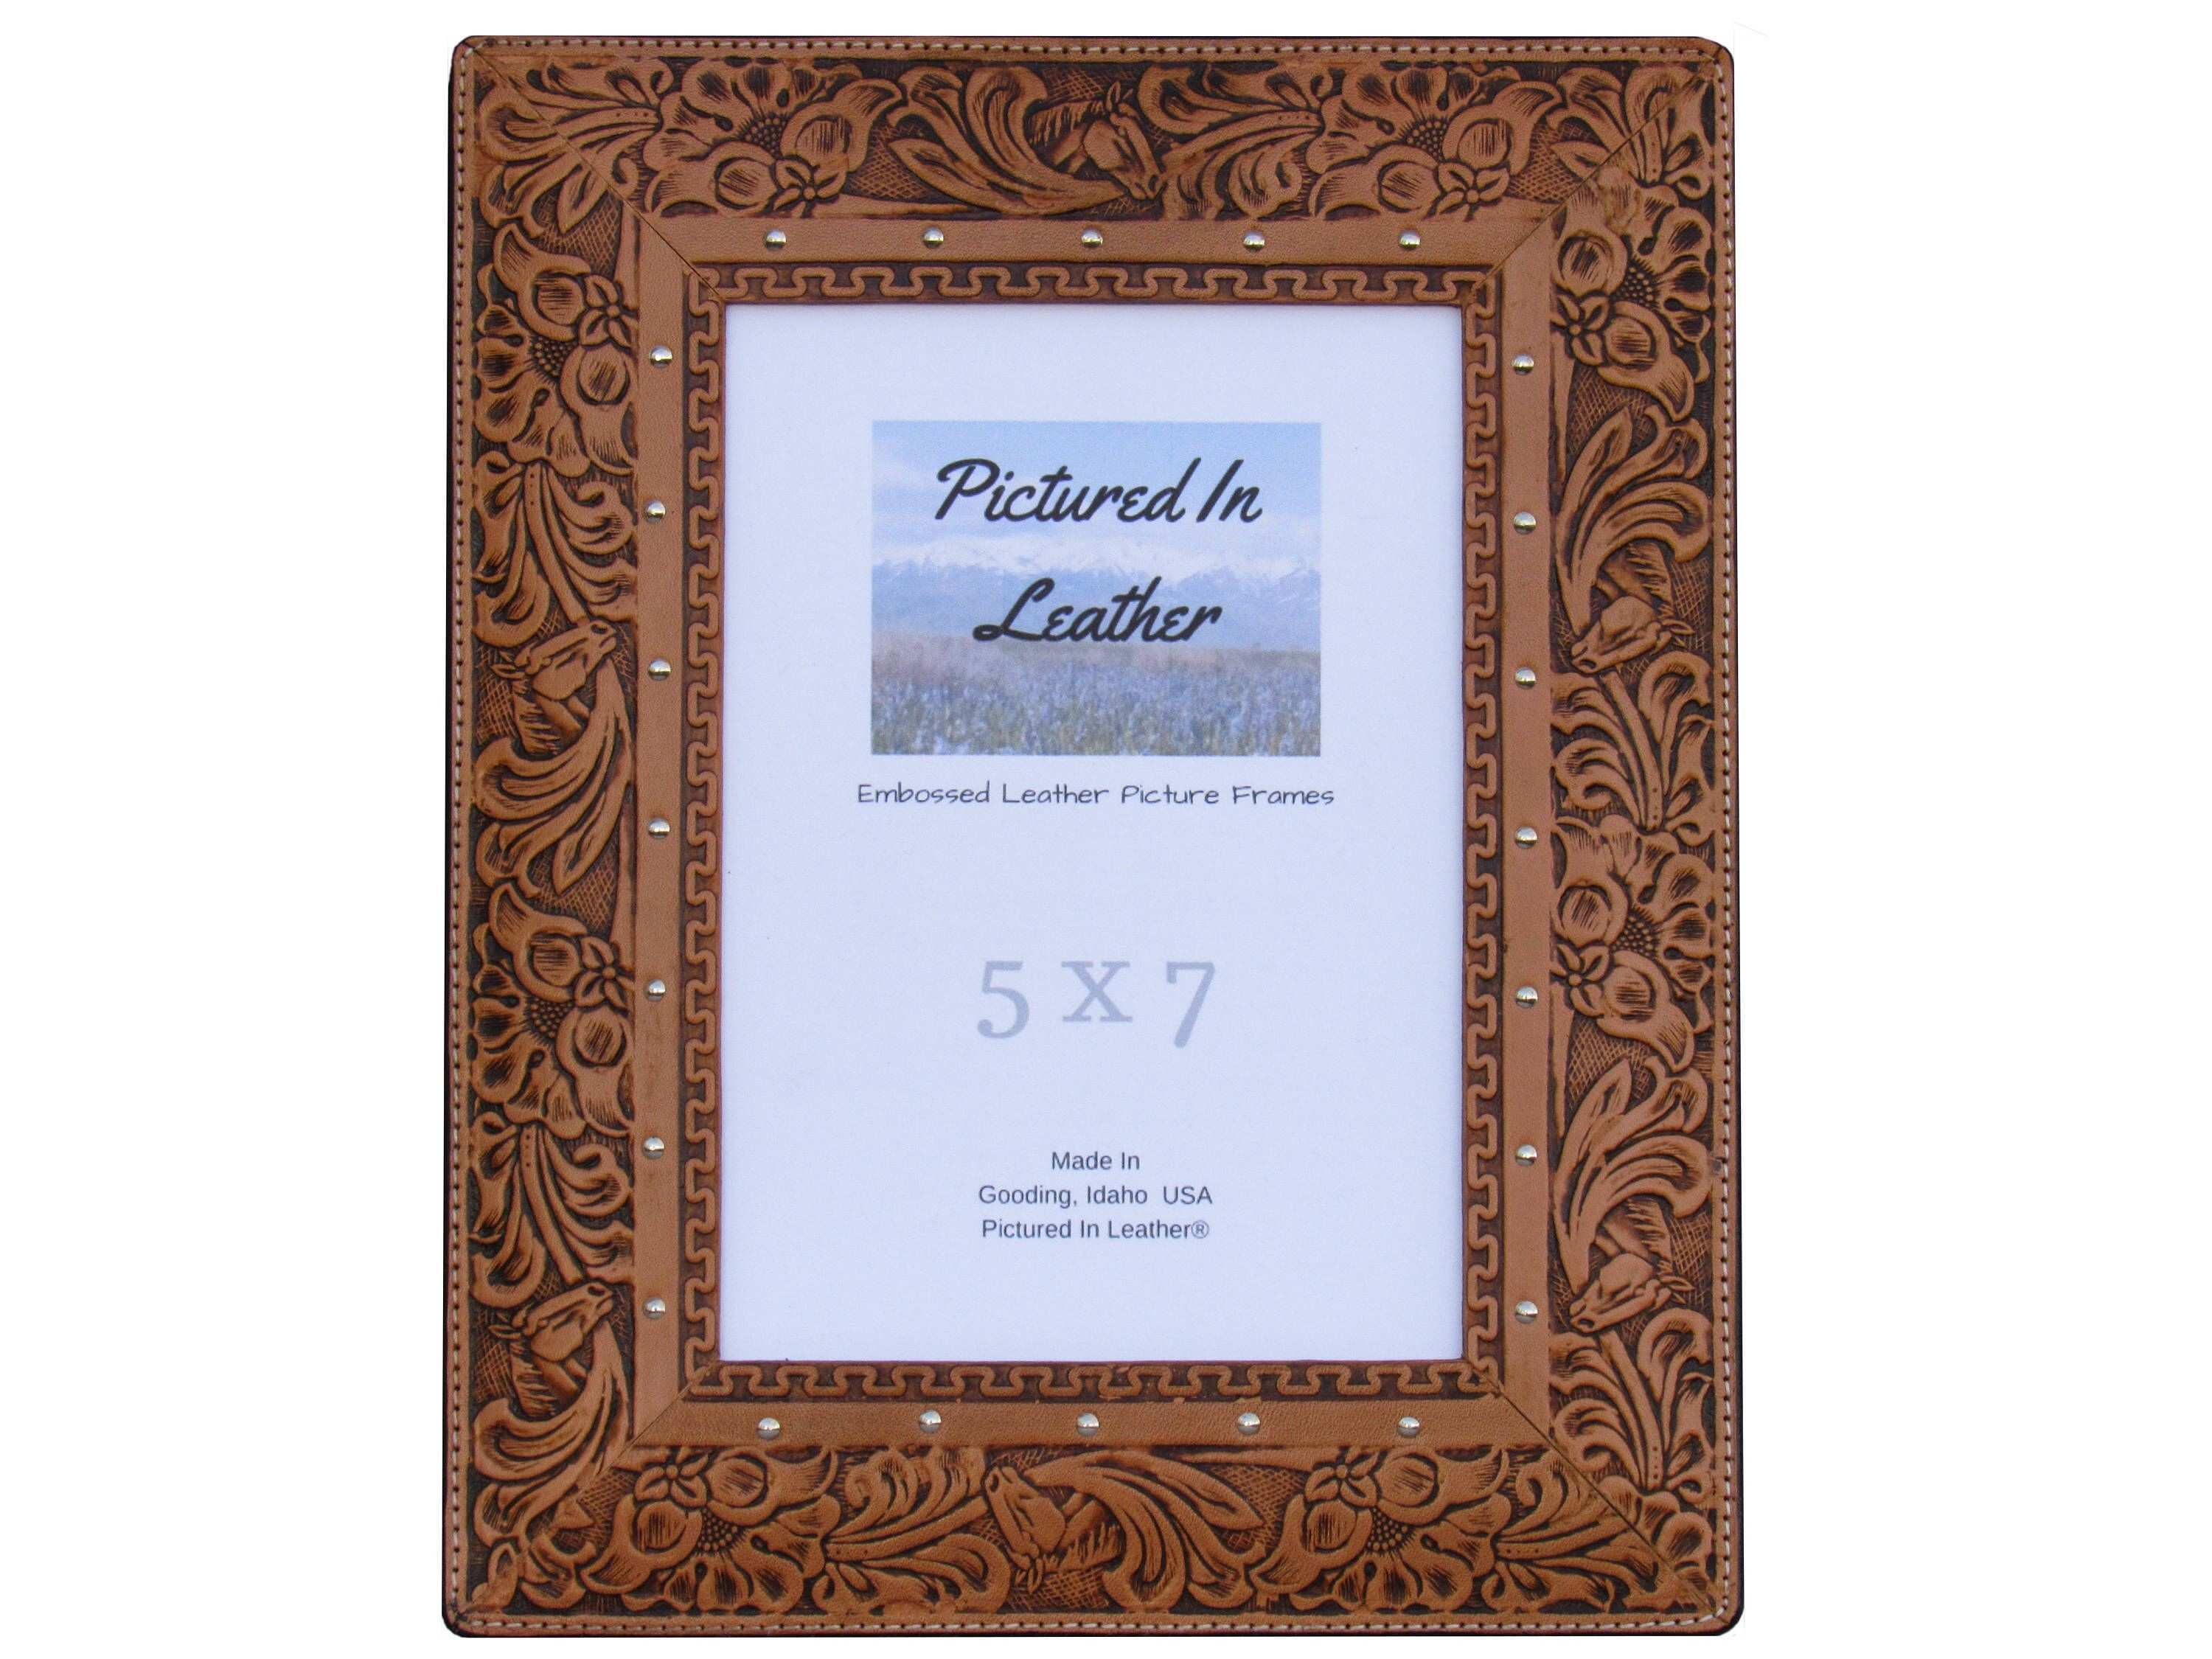 $54 A leather picture frame 5x7 embossed with a horse and floral